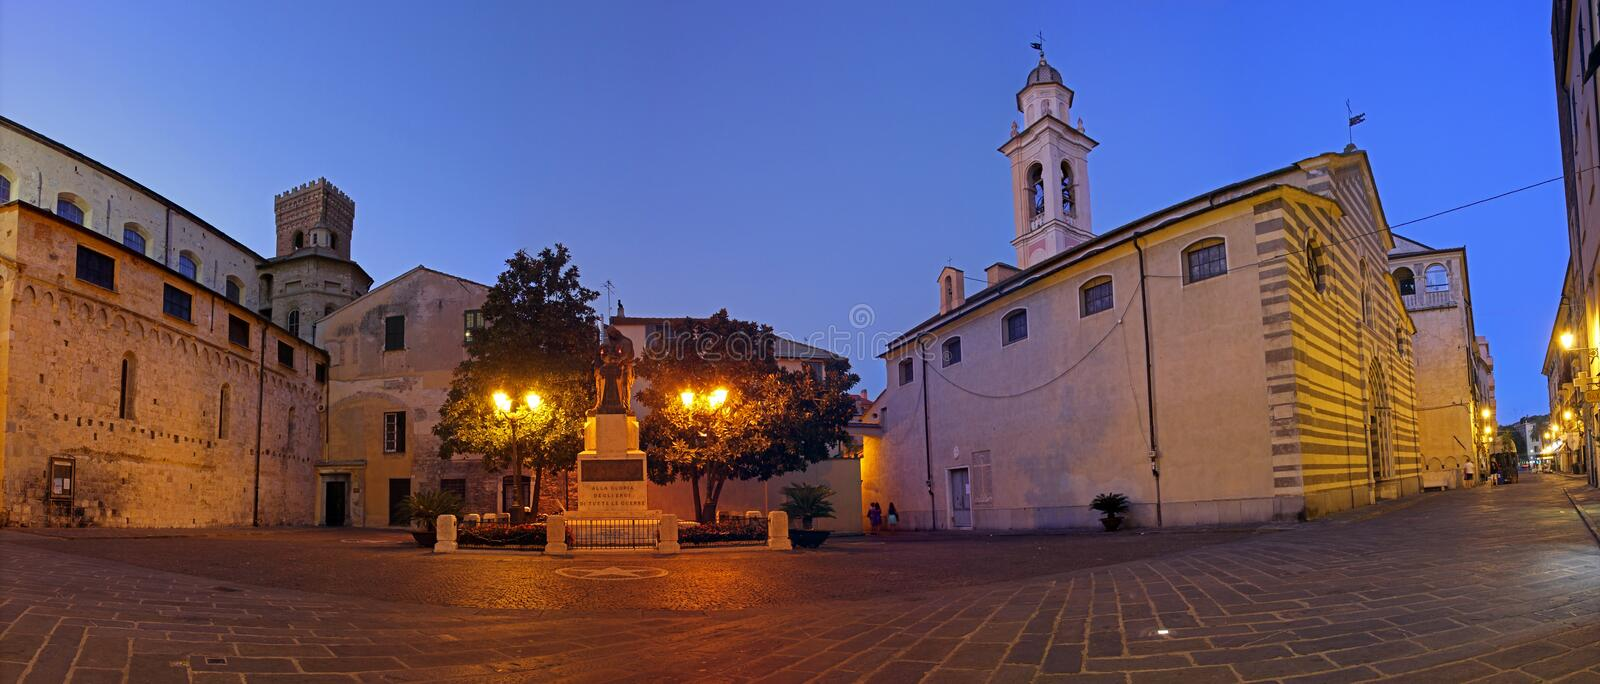 Download Albenga at nigth editorial photo. Image of nigth, historical - 34341456